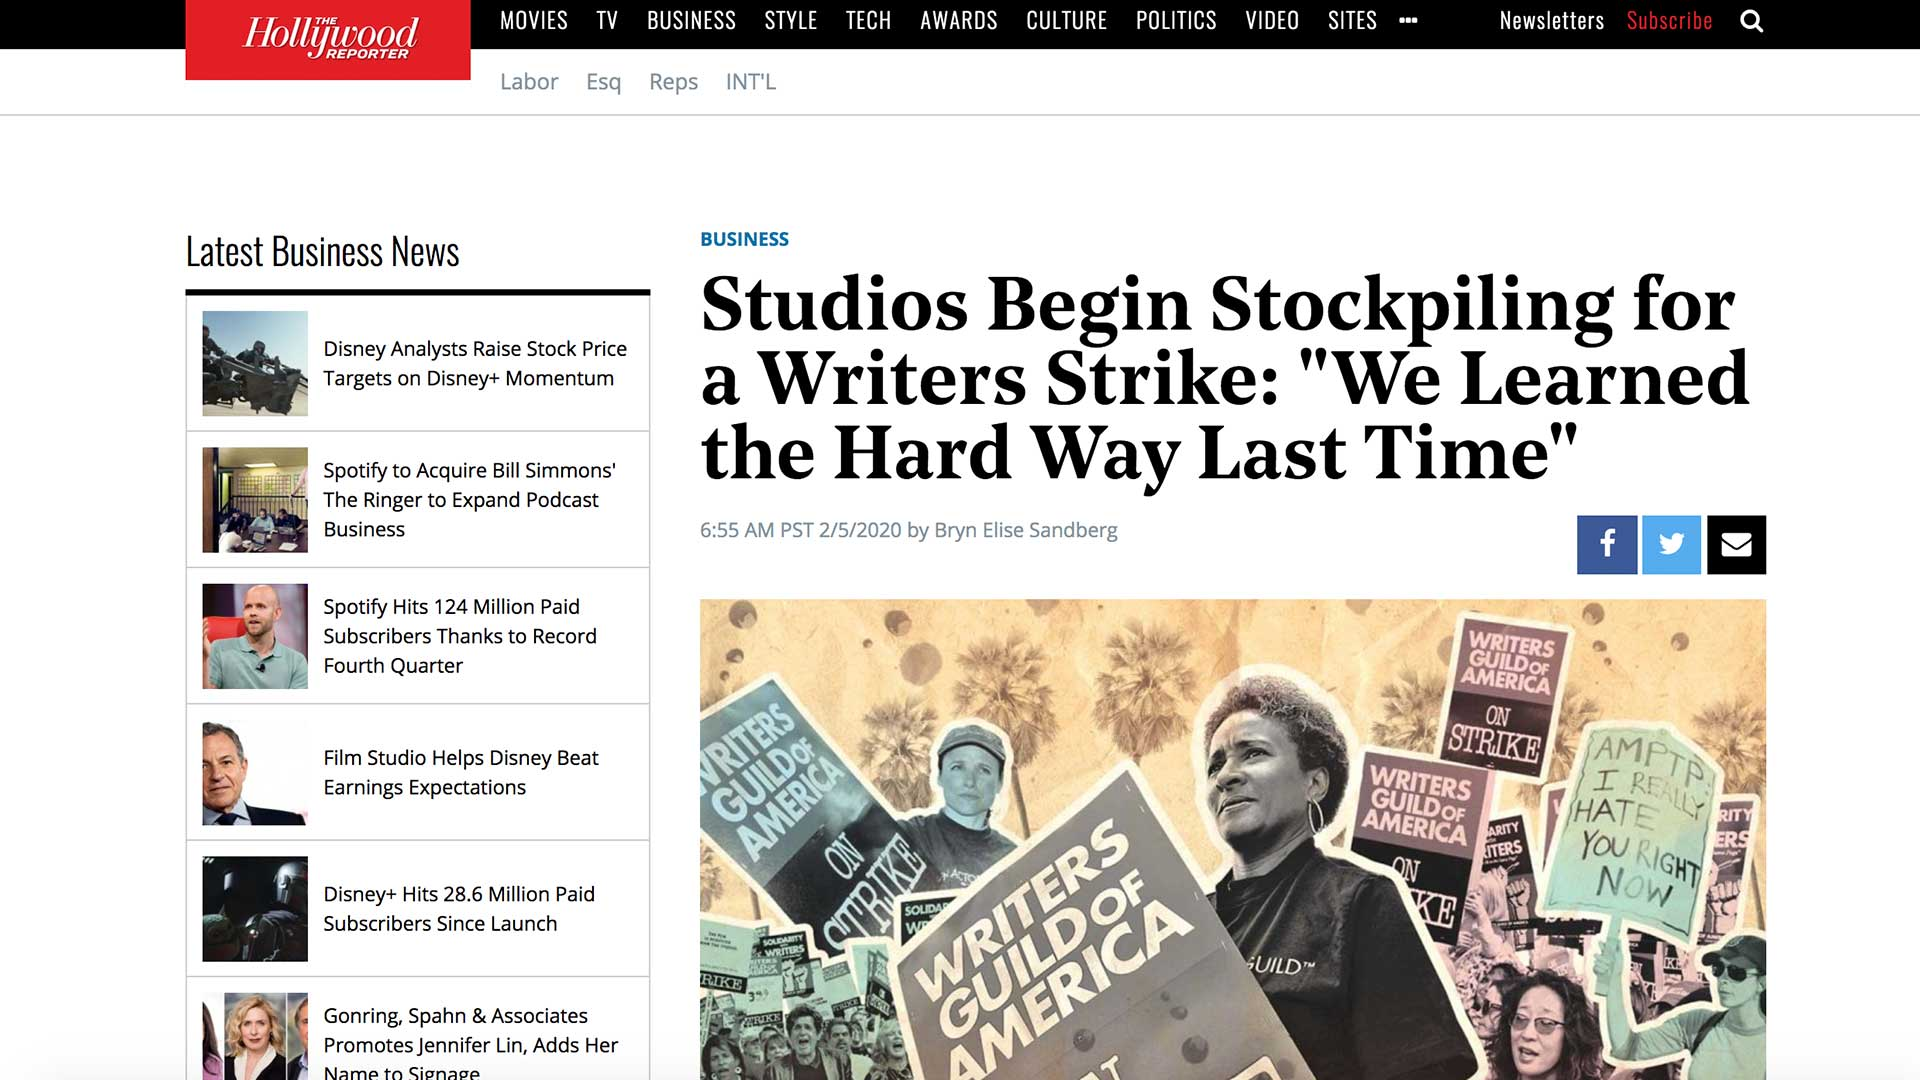 """Fairness Rocks News Studios Begin Stockpiling for a Writers Strike: """"We Learned the Hard Way Last Time"""""""